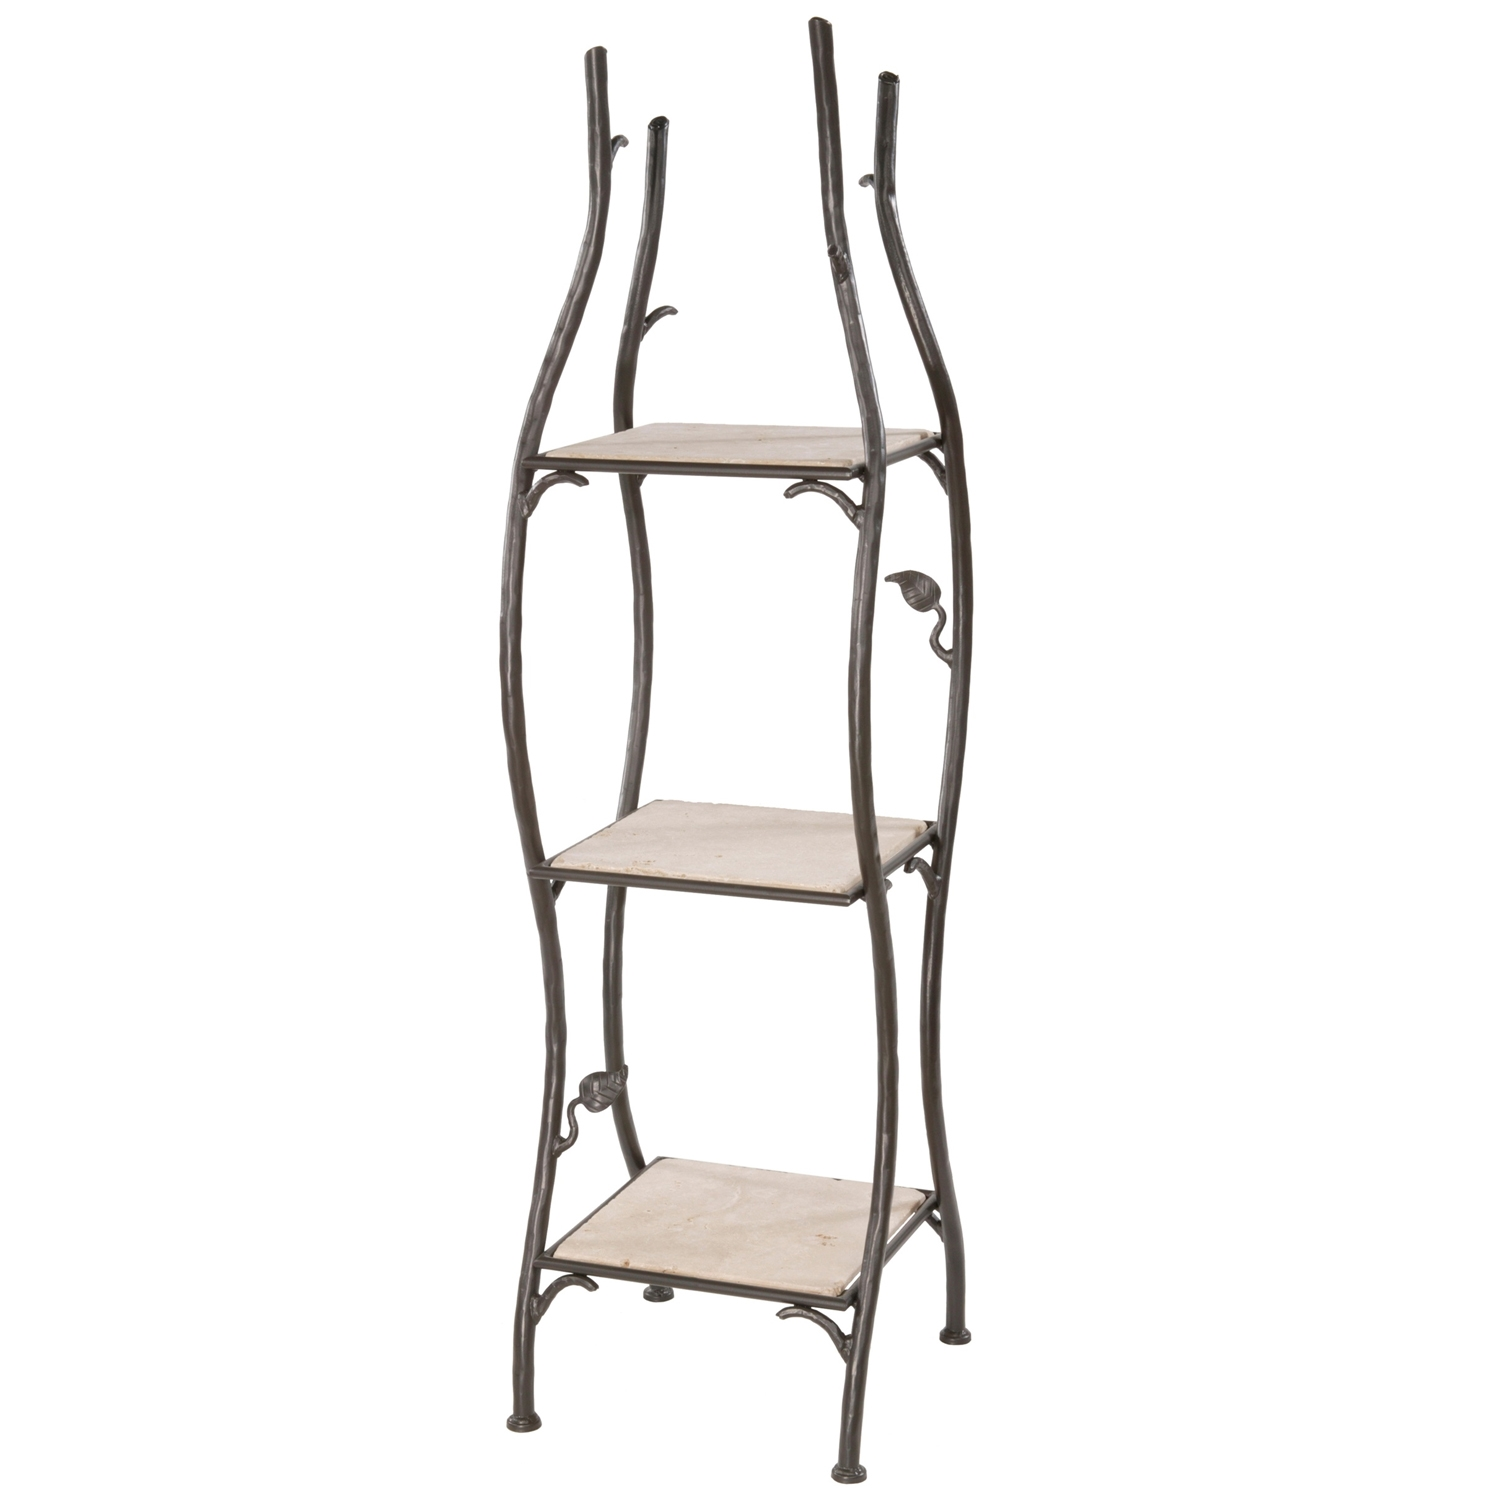 Shelving units for bathrooms - Pictured Here Is The Single Width Sassafras Standing Shelf With Rustic Wrought Iron Frame And